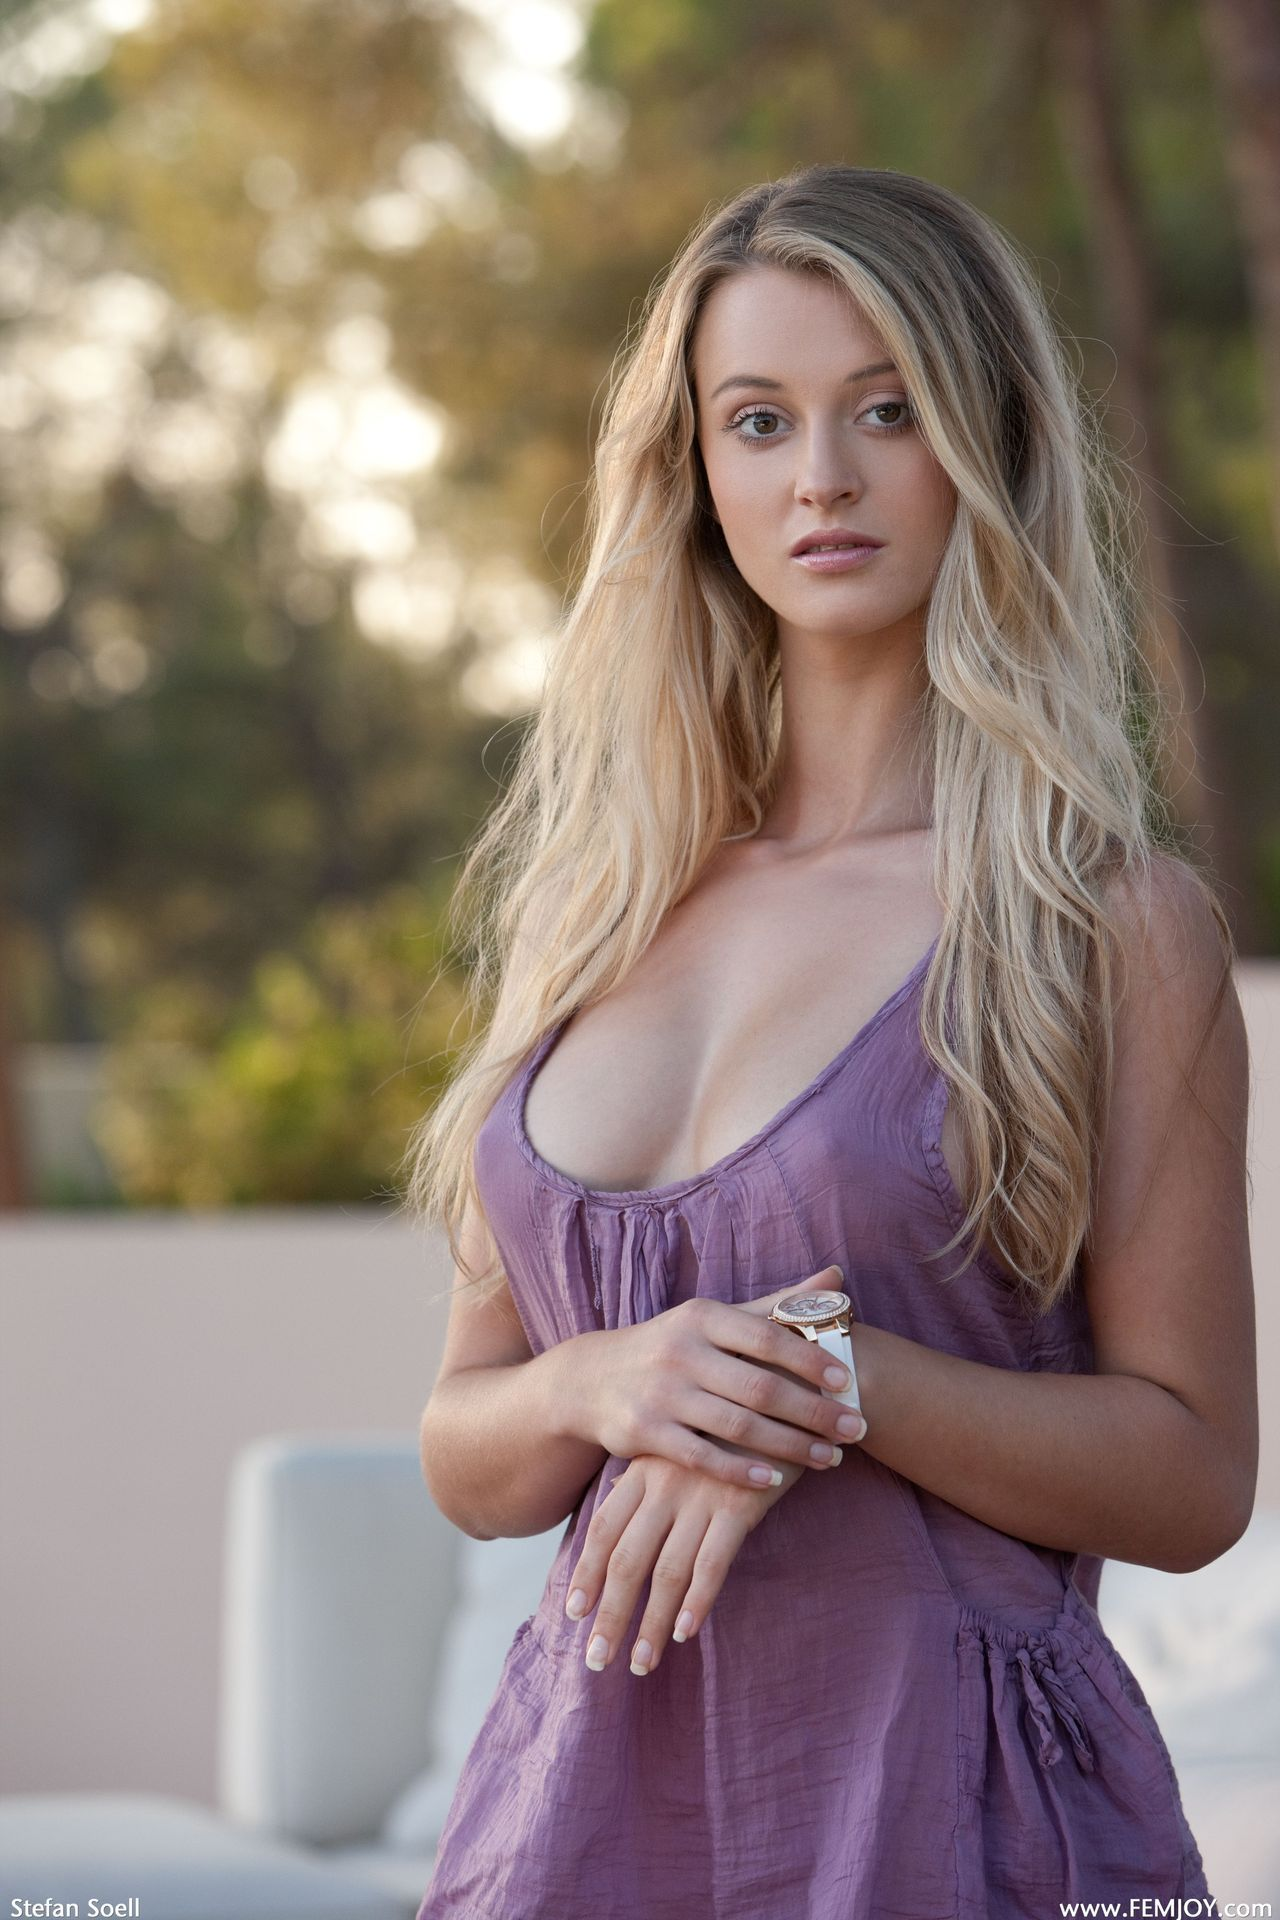 Pokies, nips, and a little downblouse